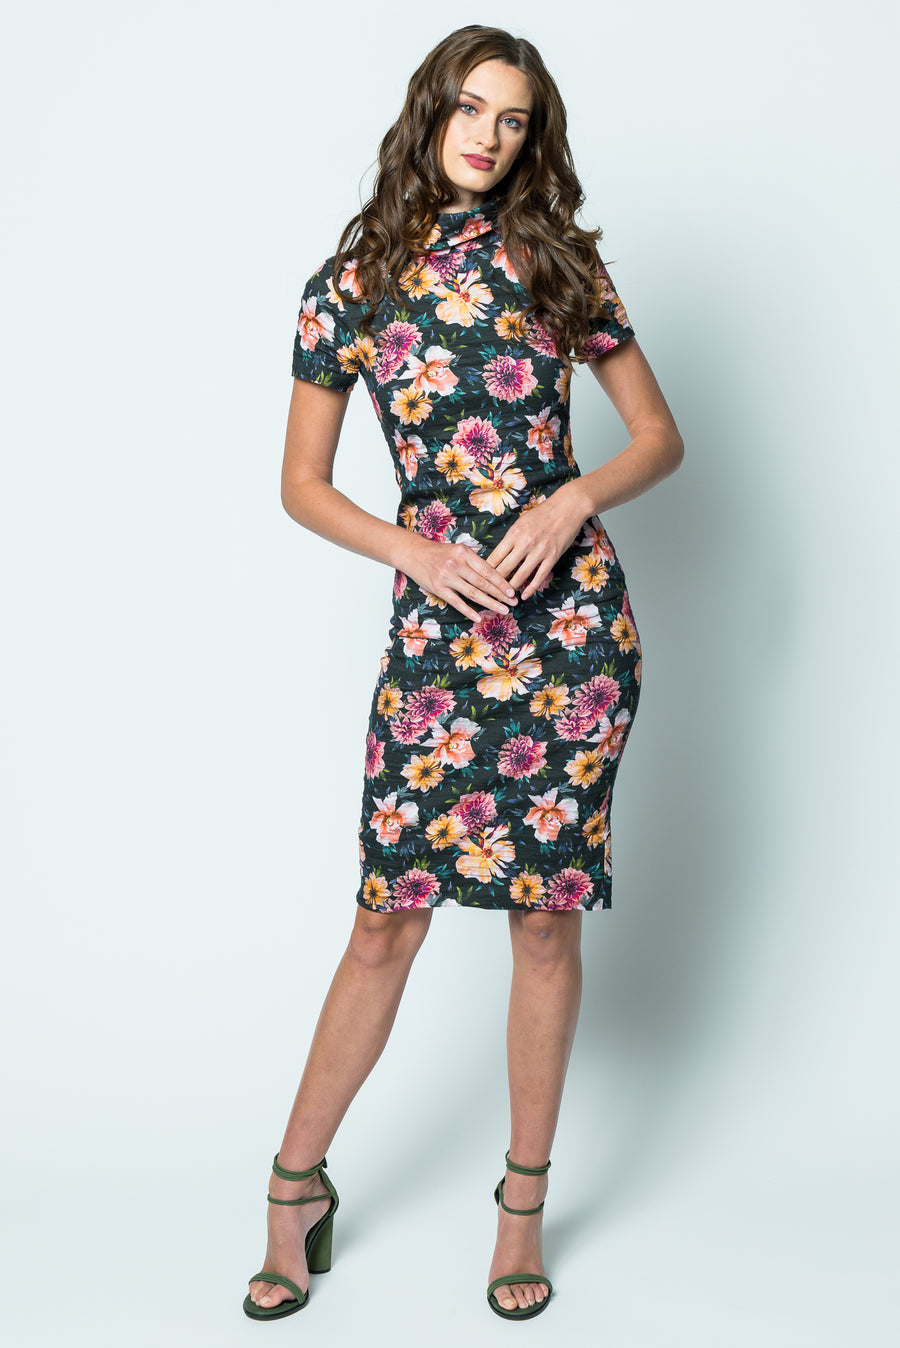 Nicole Miller Dahlia Bloom High Neck Dress